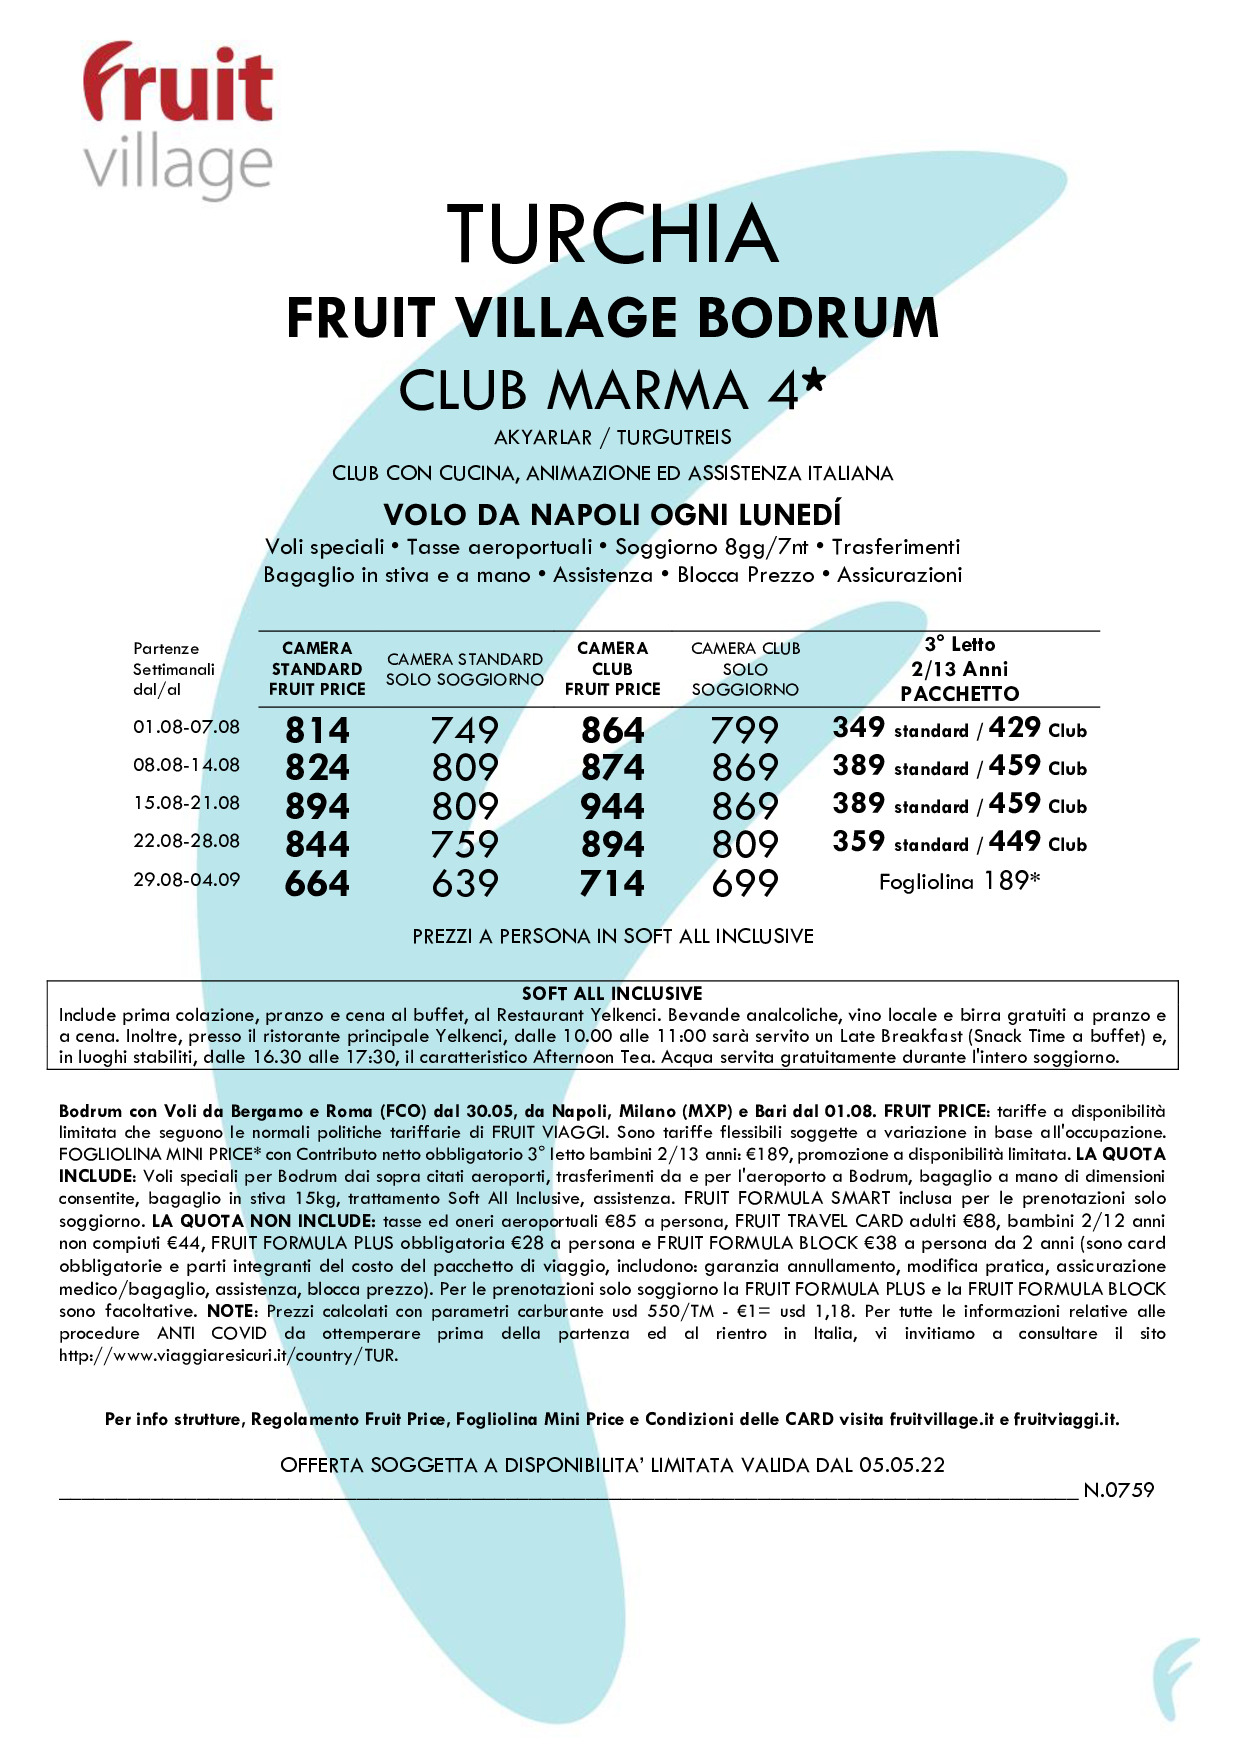 FRUIT VILLAGE Bodrum Club Marma con voli da Napoli